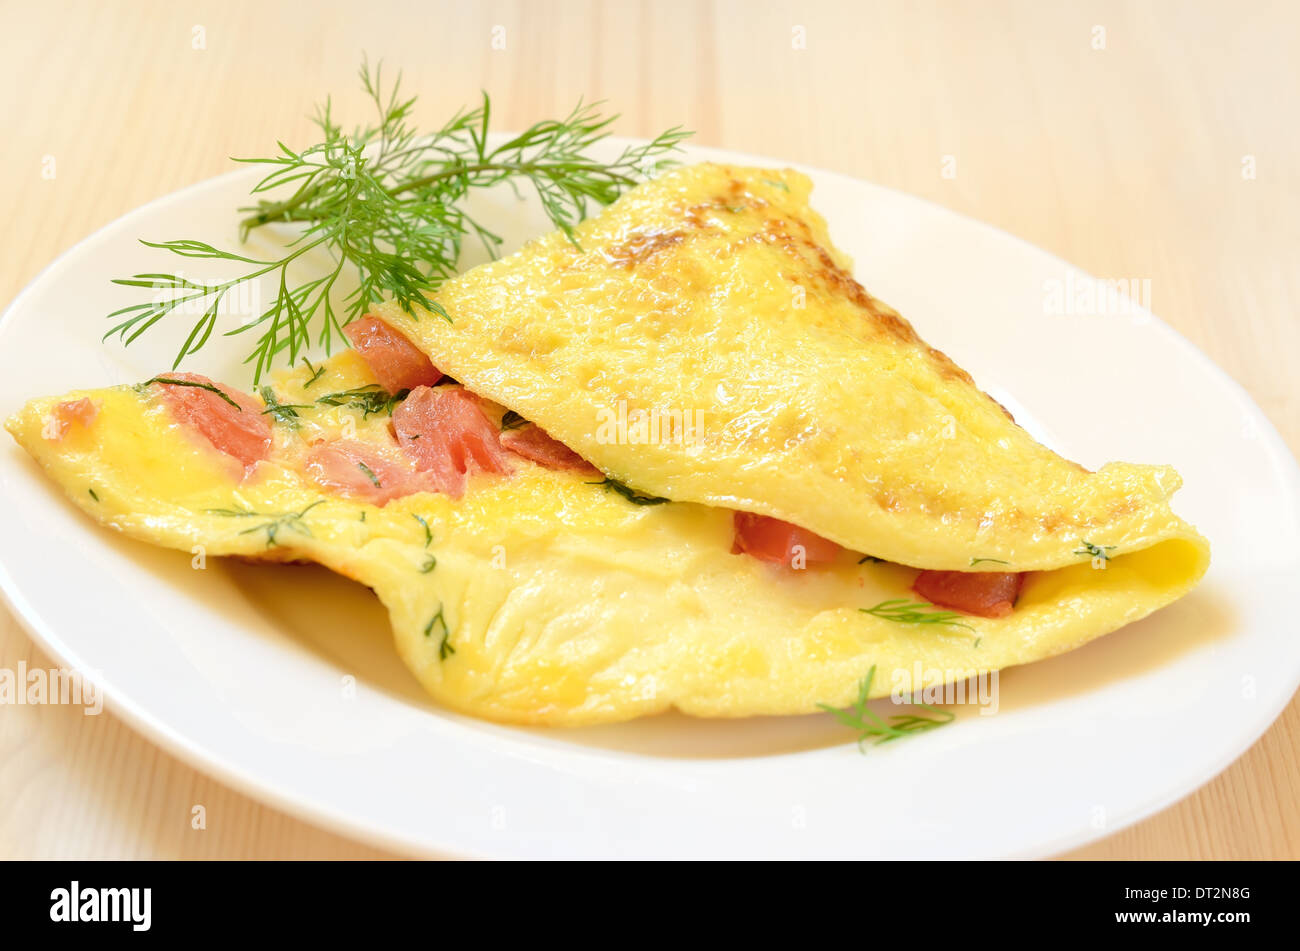 Omelet with tomatoes and herbs on white plate - Stock Image